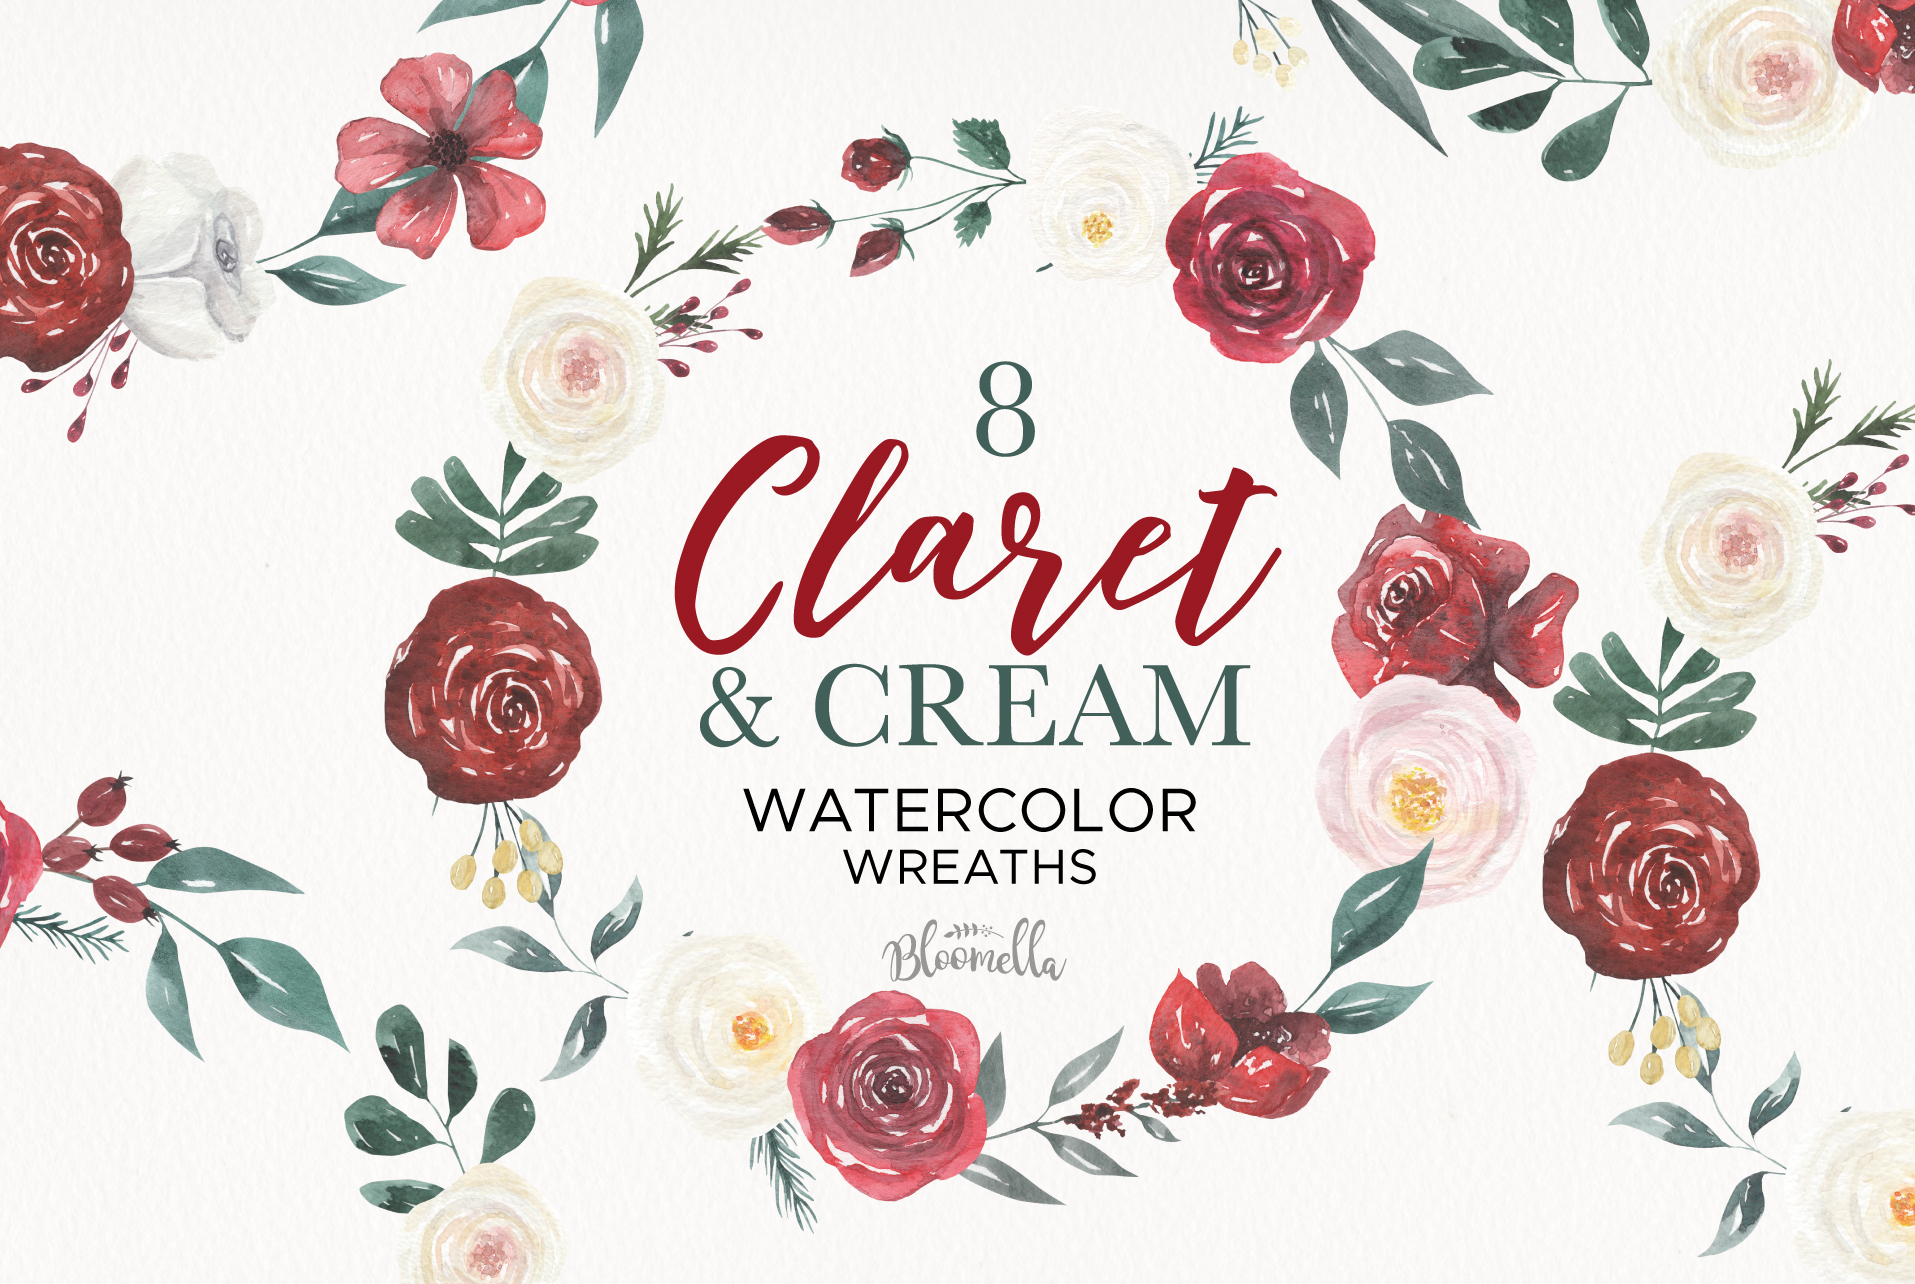 Claret Cream Red Roses Watercolor Floral Wreaths 8 Wedding example image 1